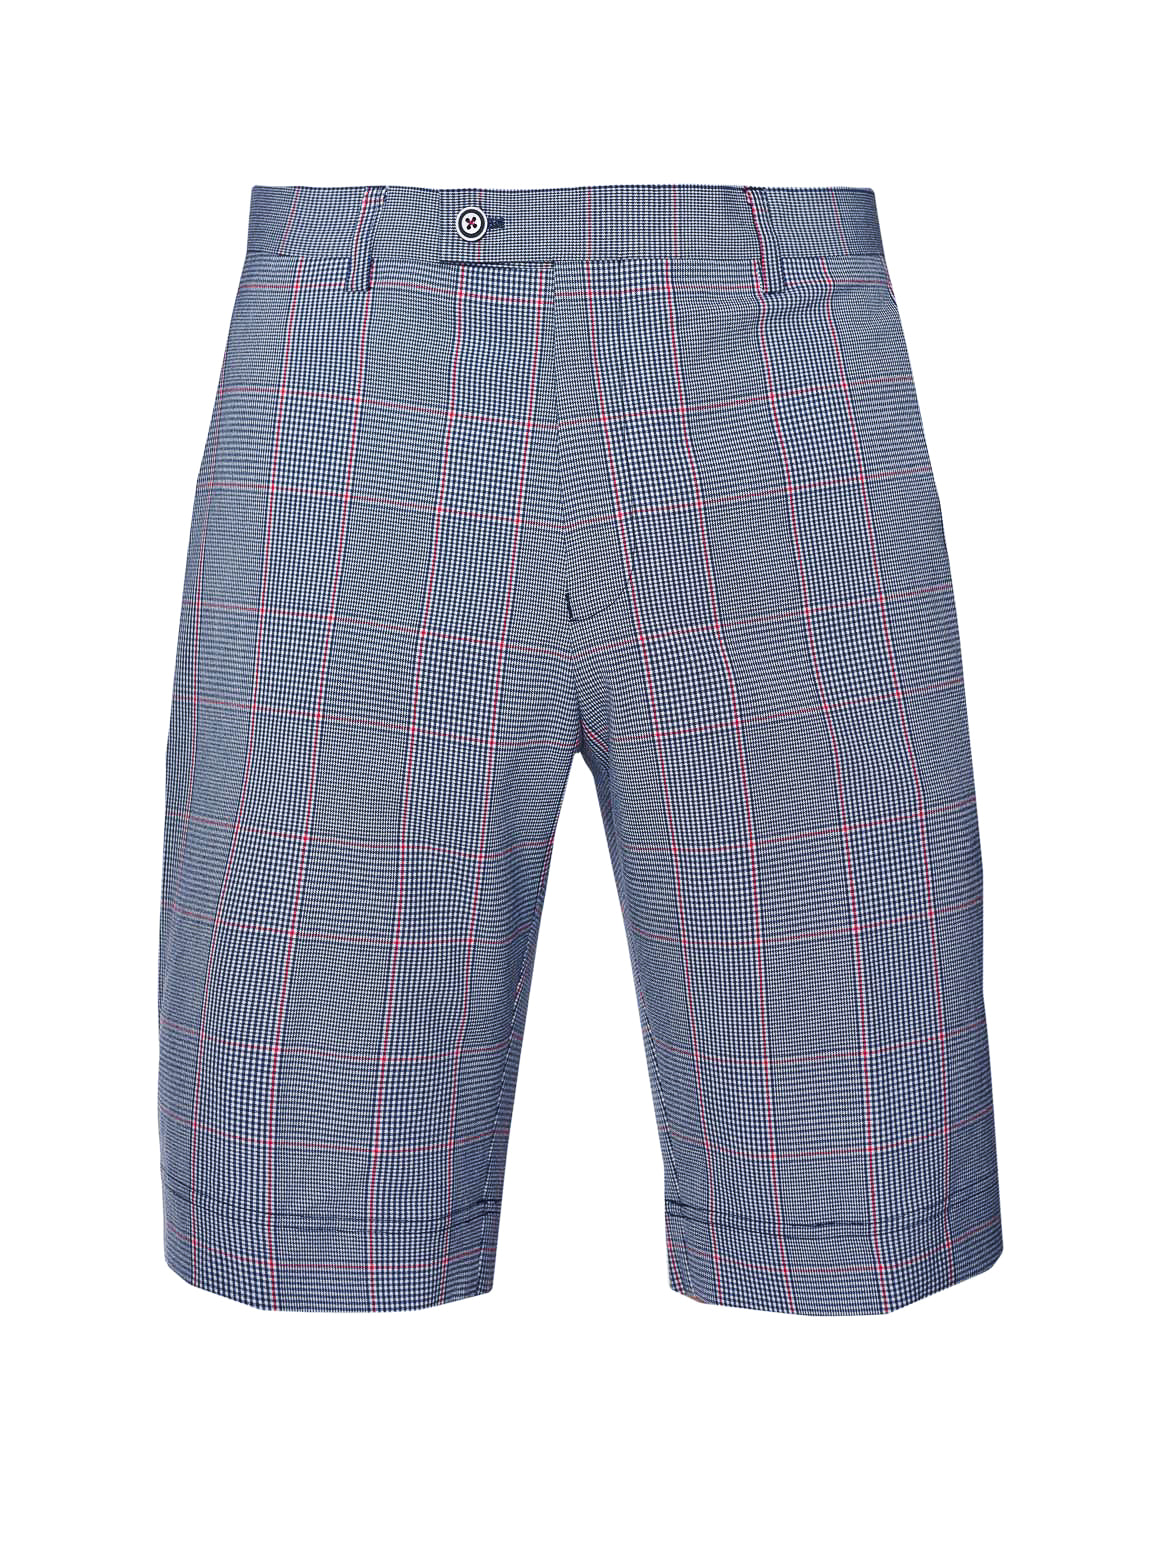 Fairfax Skinny Fit Shorts  - Blue Red Window Plaid